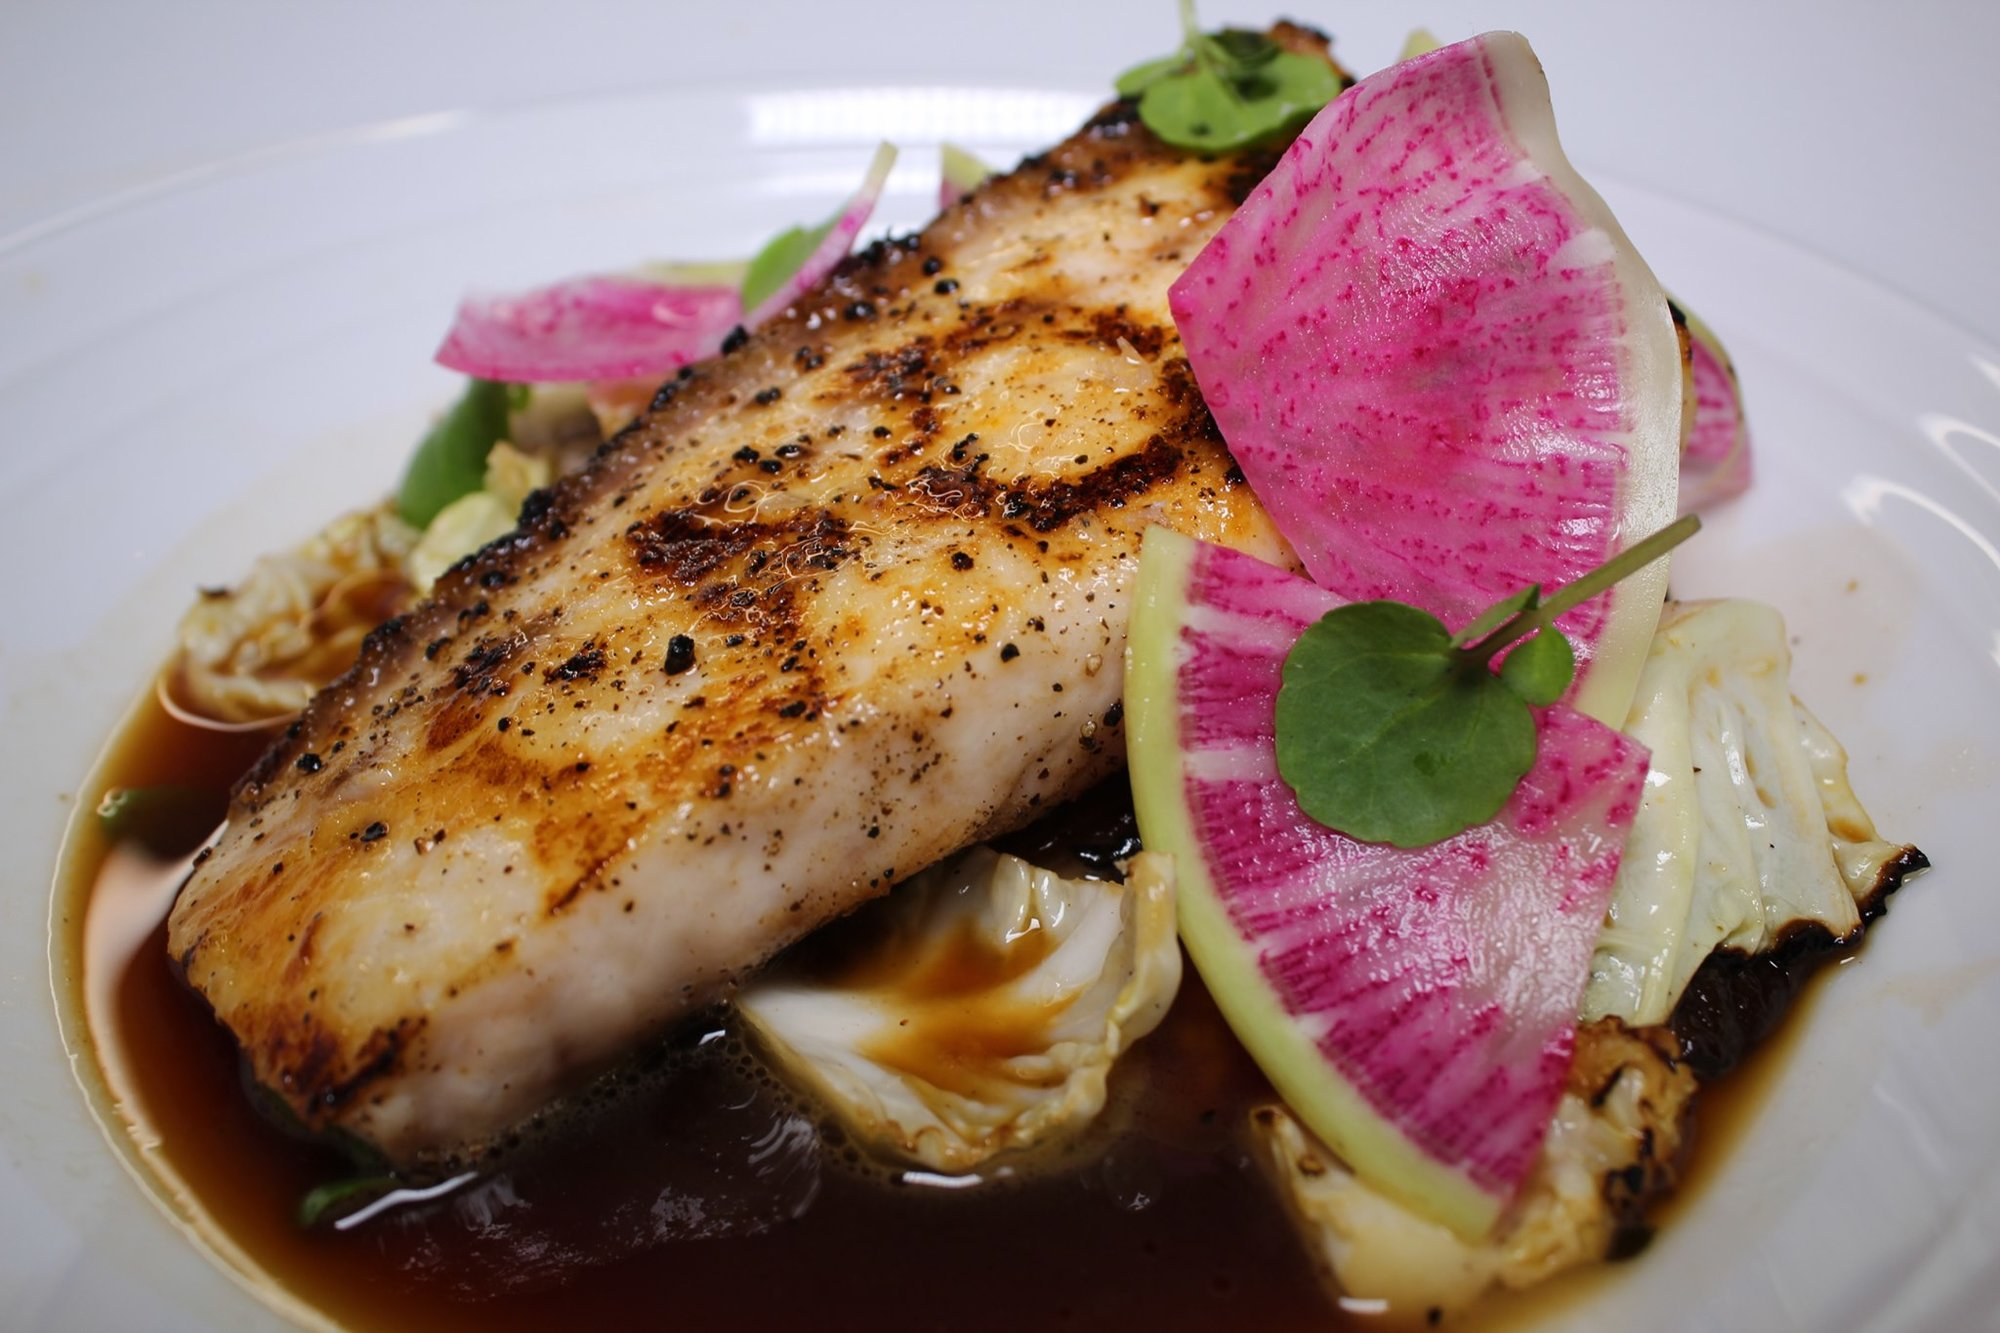 New Restaurants in Delray Beach & Boca Raton